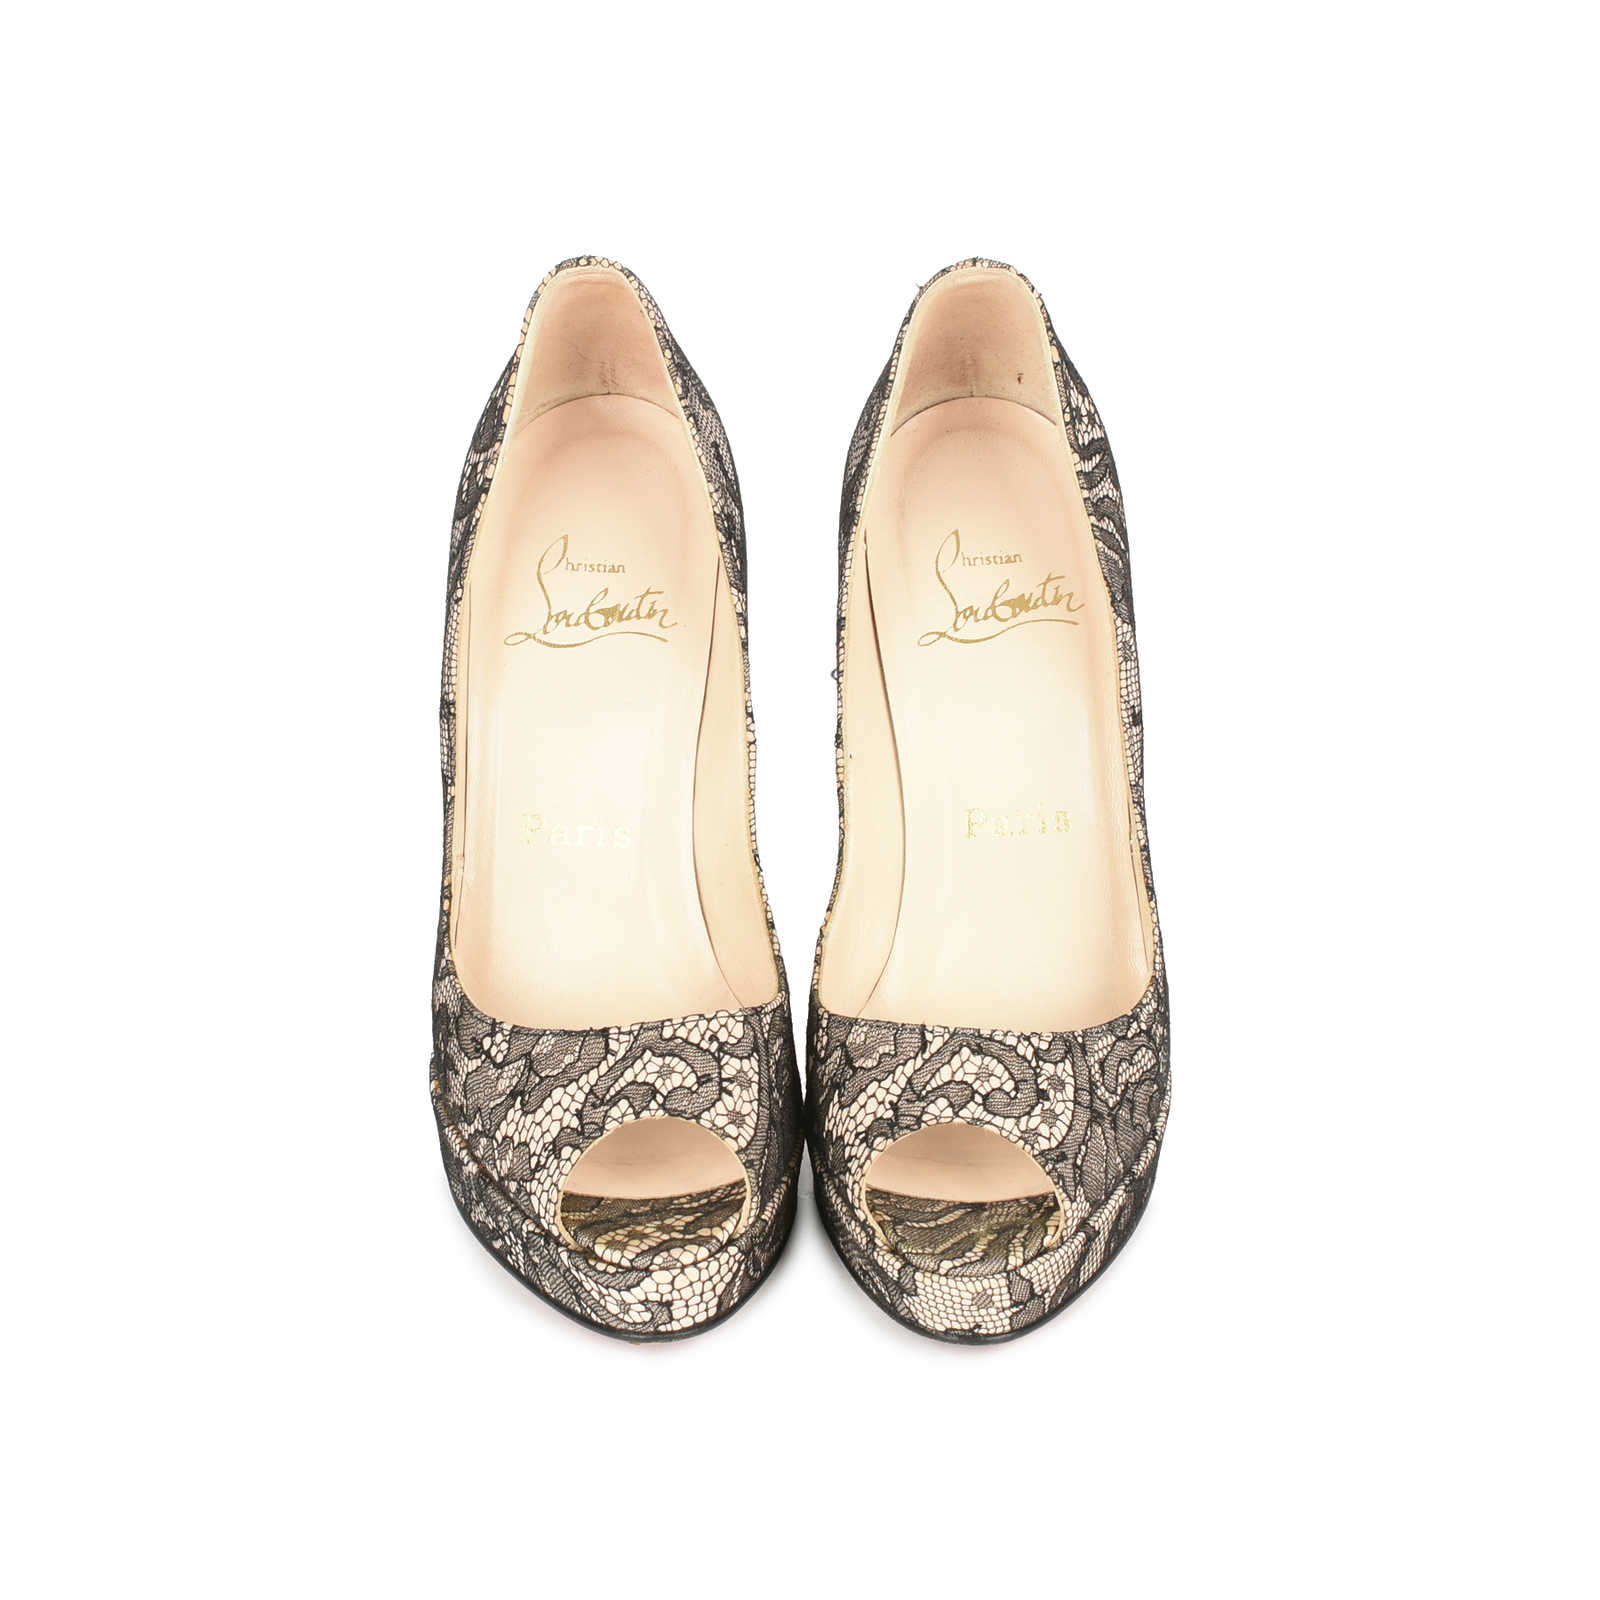 82f17a716a8 Authentic Second Hand Christian Louboutin Banana Lace Pumps (PSS-080 ...